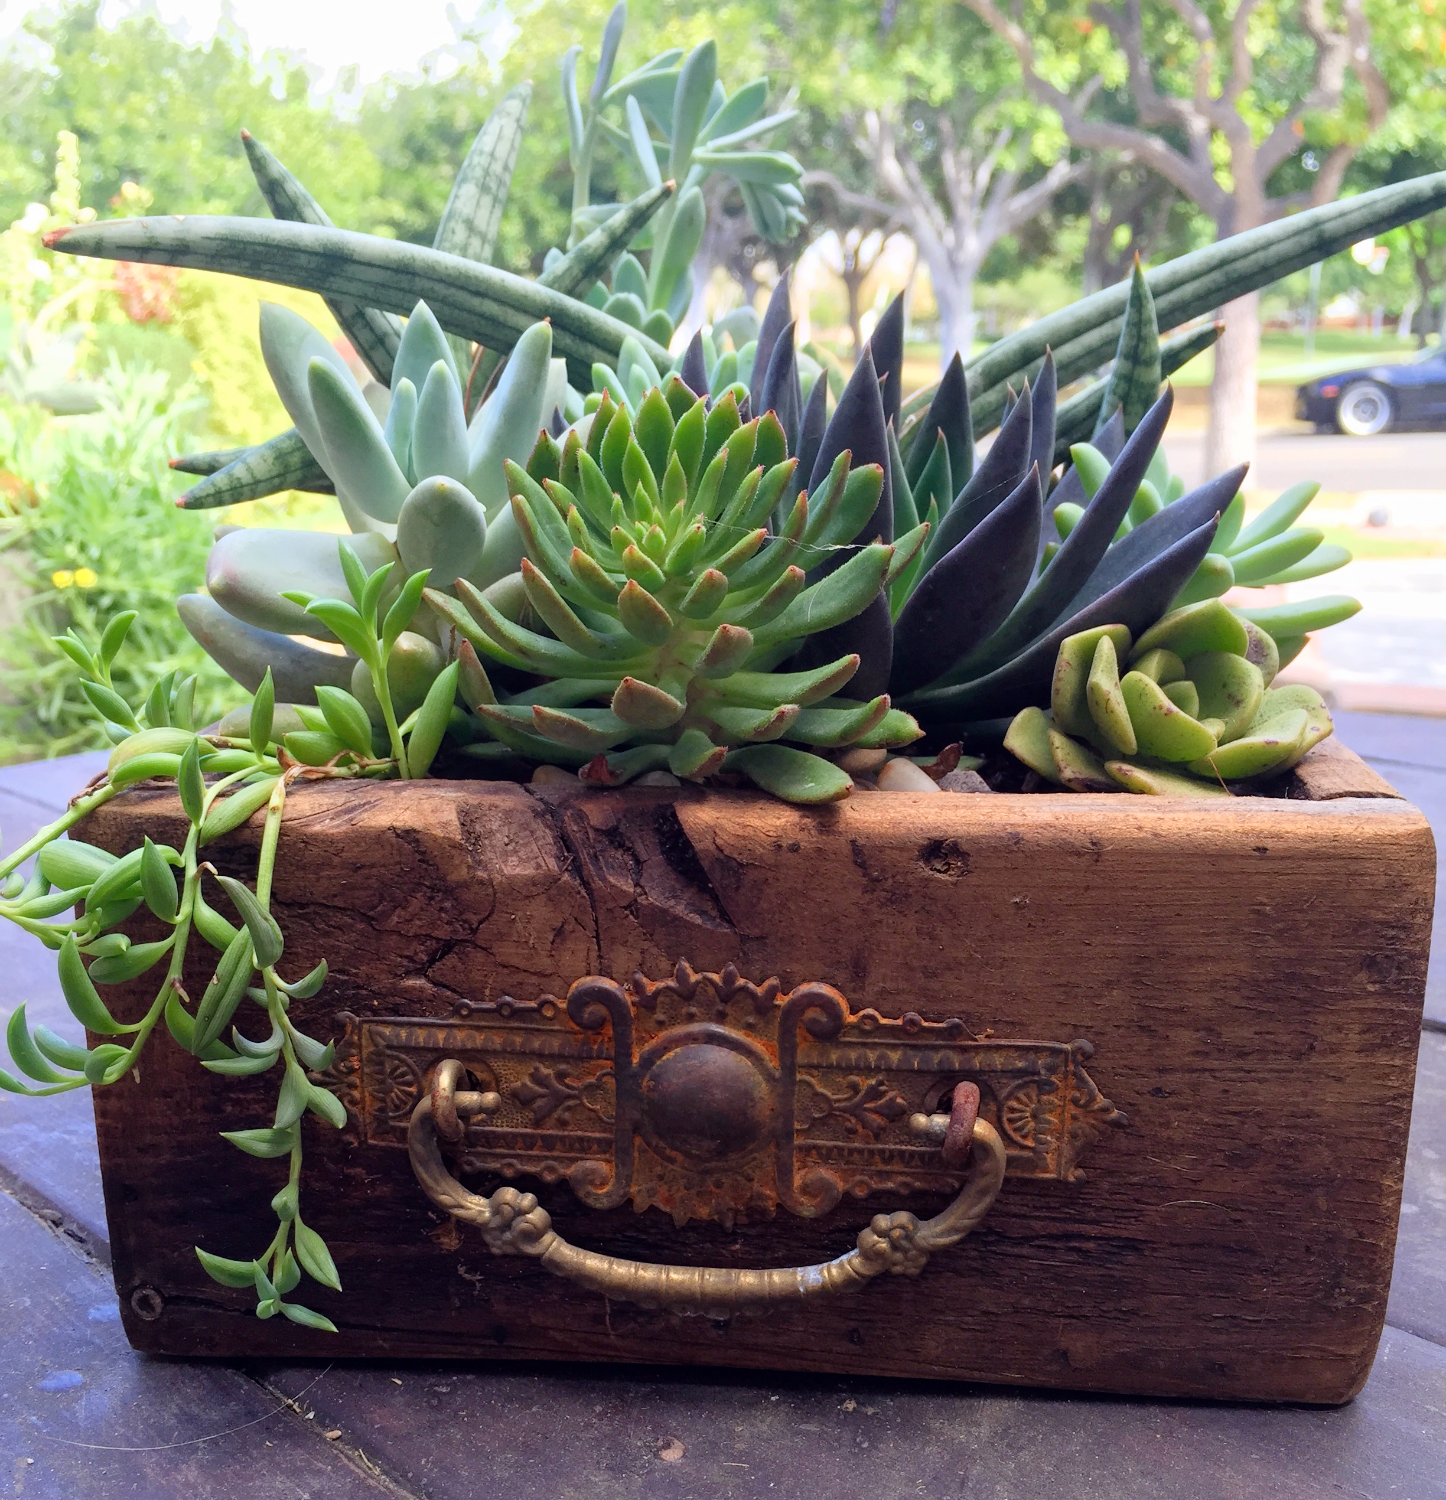 Reclaimed wood and Succulents